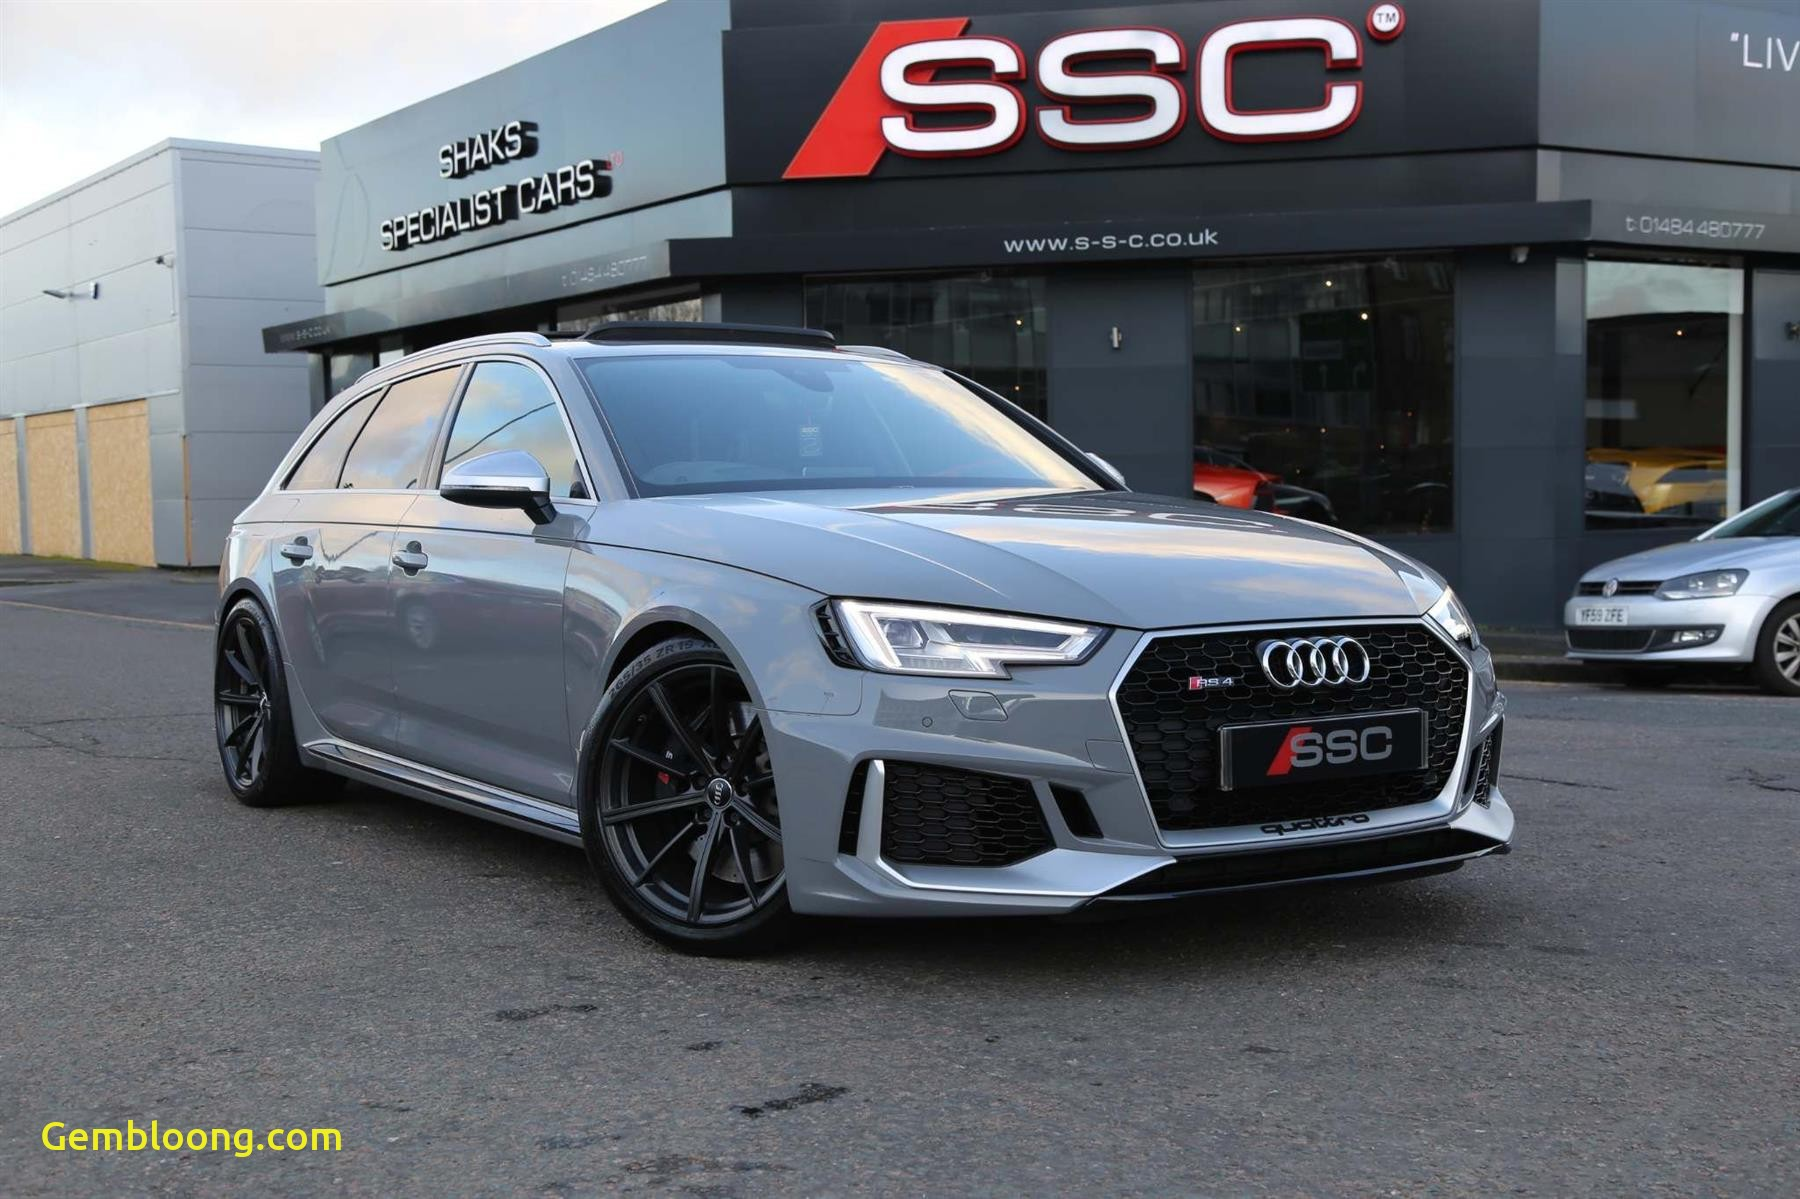 Cars for Sale Near Me Audi New Used Audi Rs4 Cars for Sale with Pistonheads